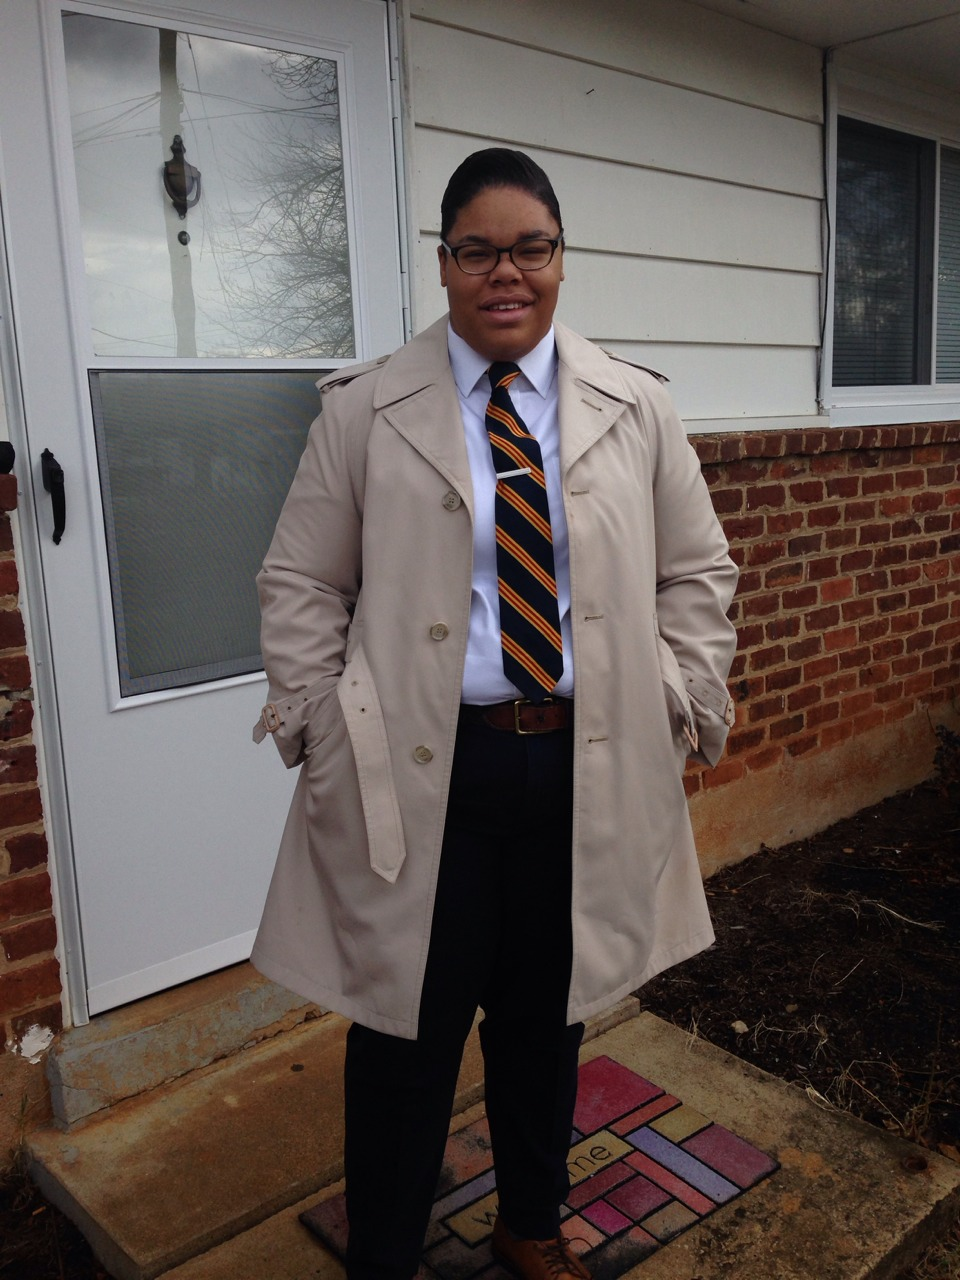 Both trench and tie are thrifted